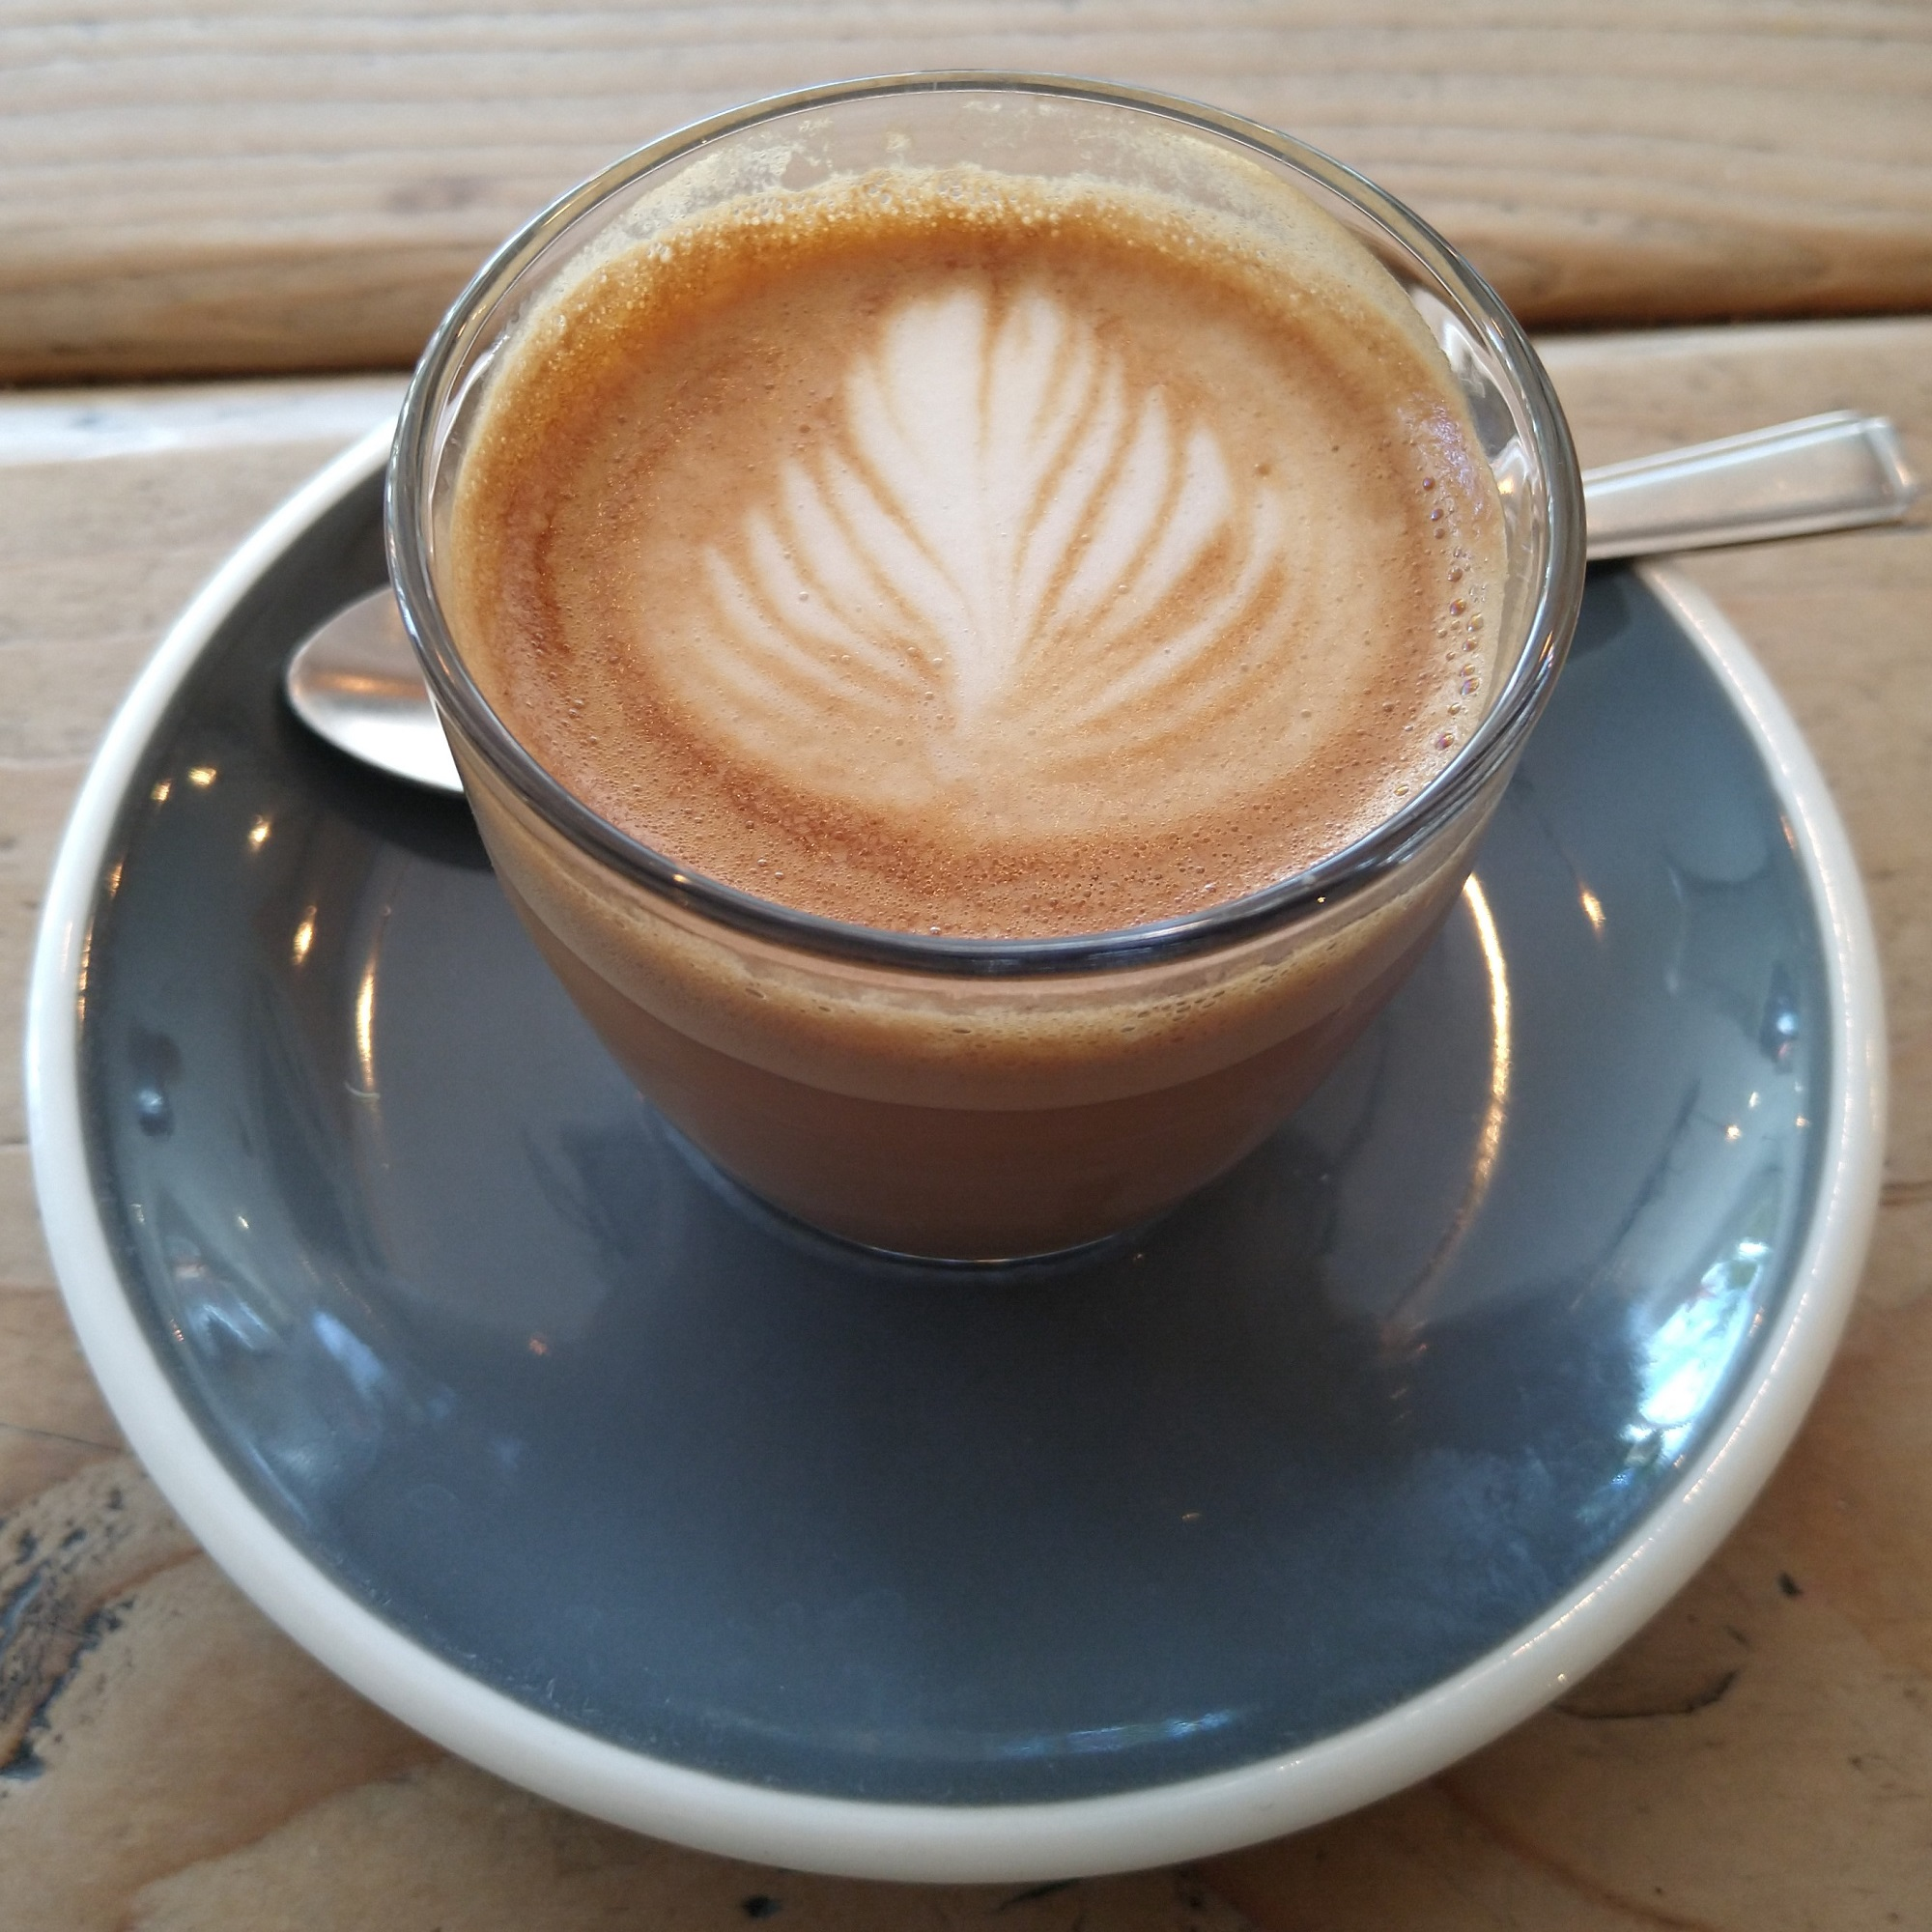 A cortado, served in a glass on a blue saucer, made with an exclusive coffee from Santa Ana in El Salvador and roasted by Nude Espresso for Bean and Hop.